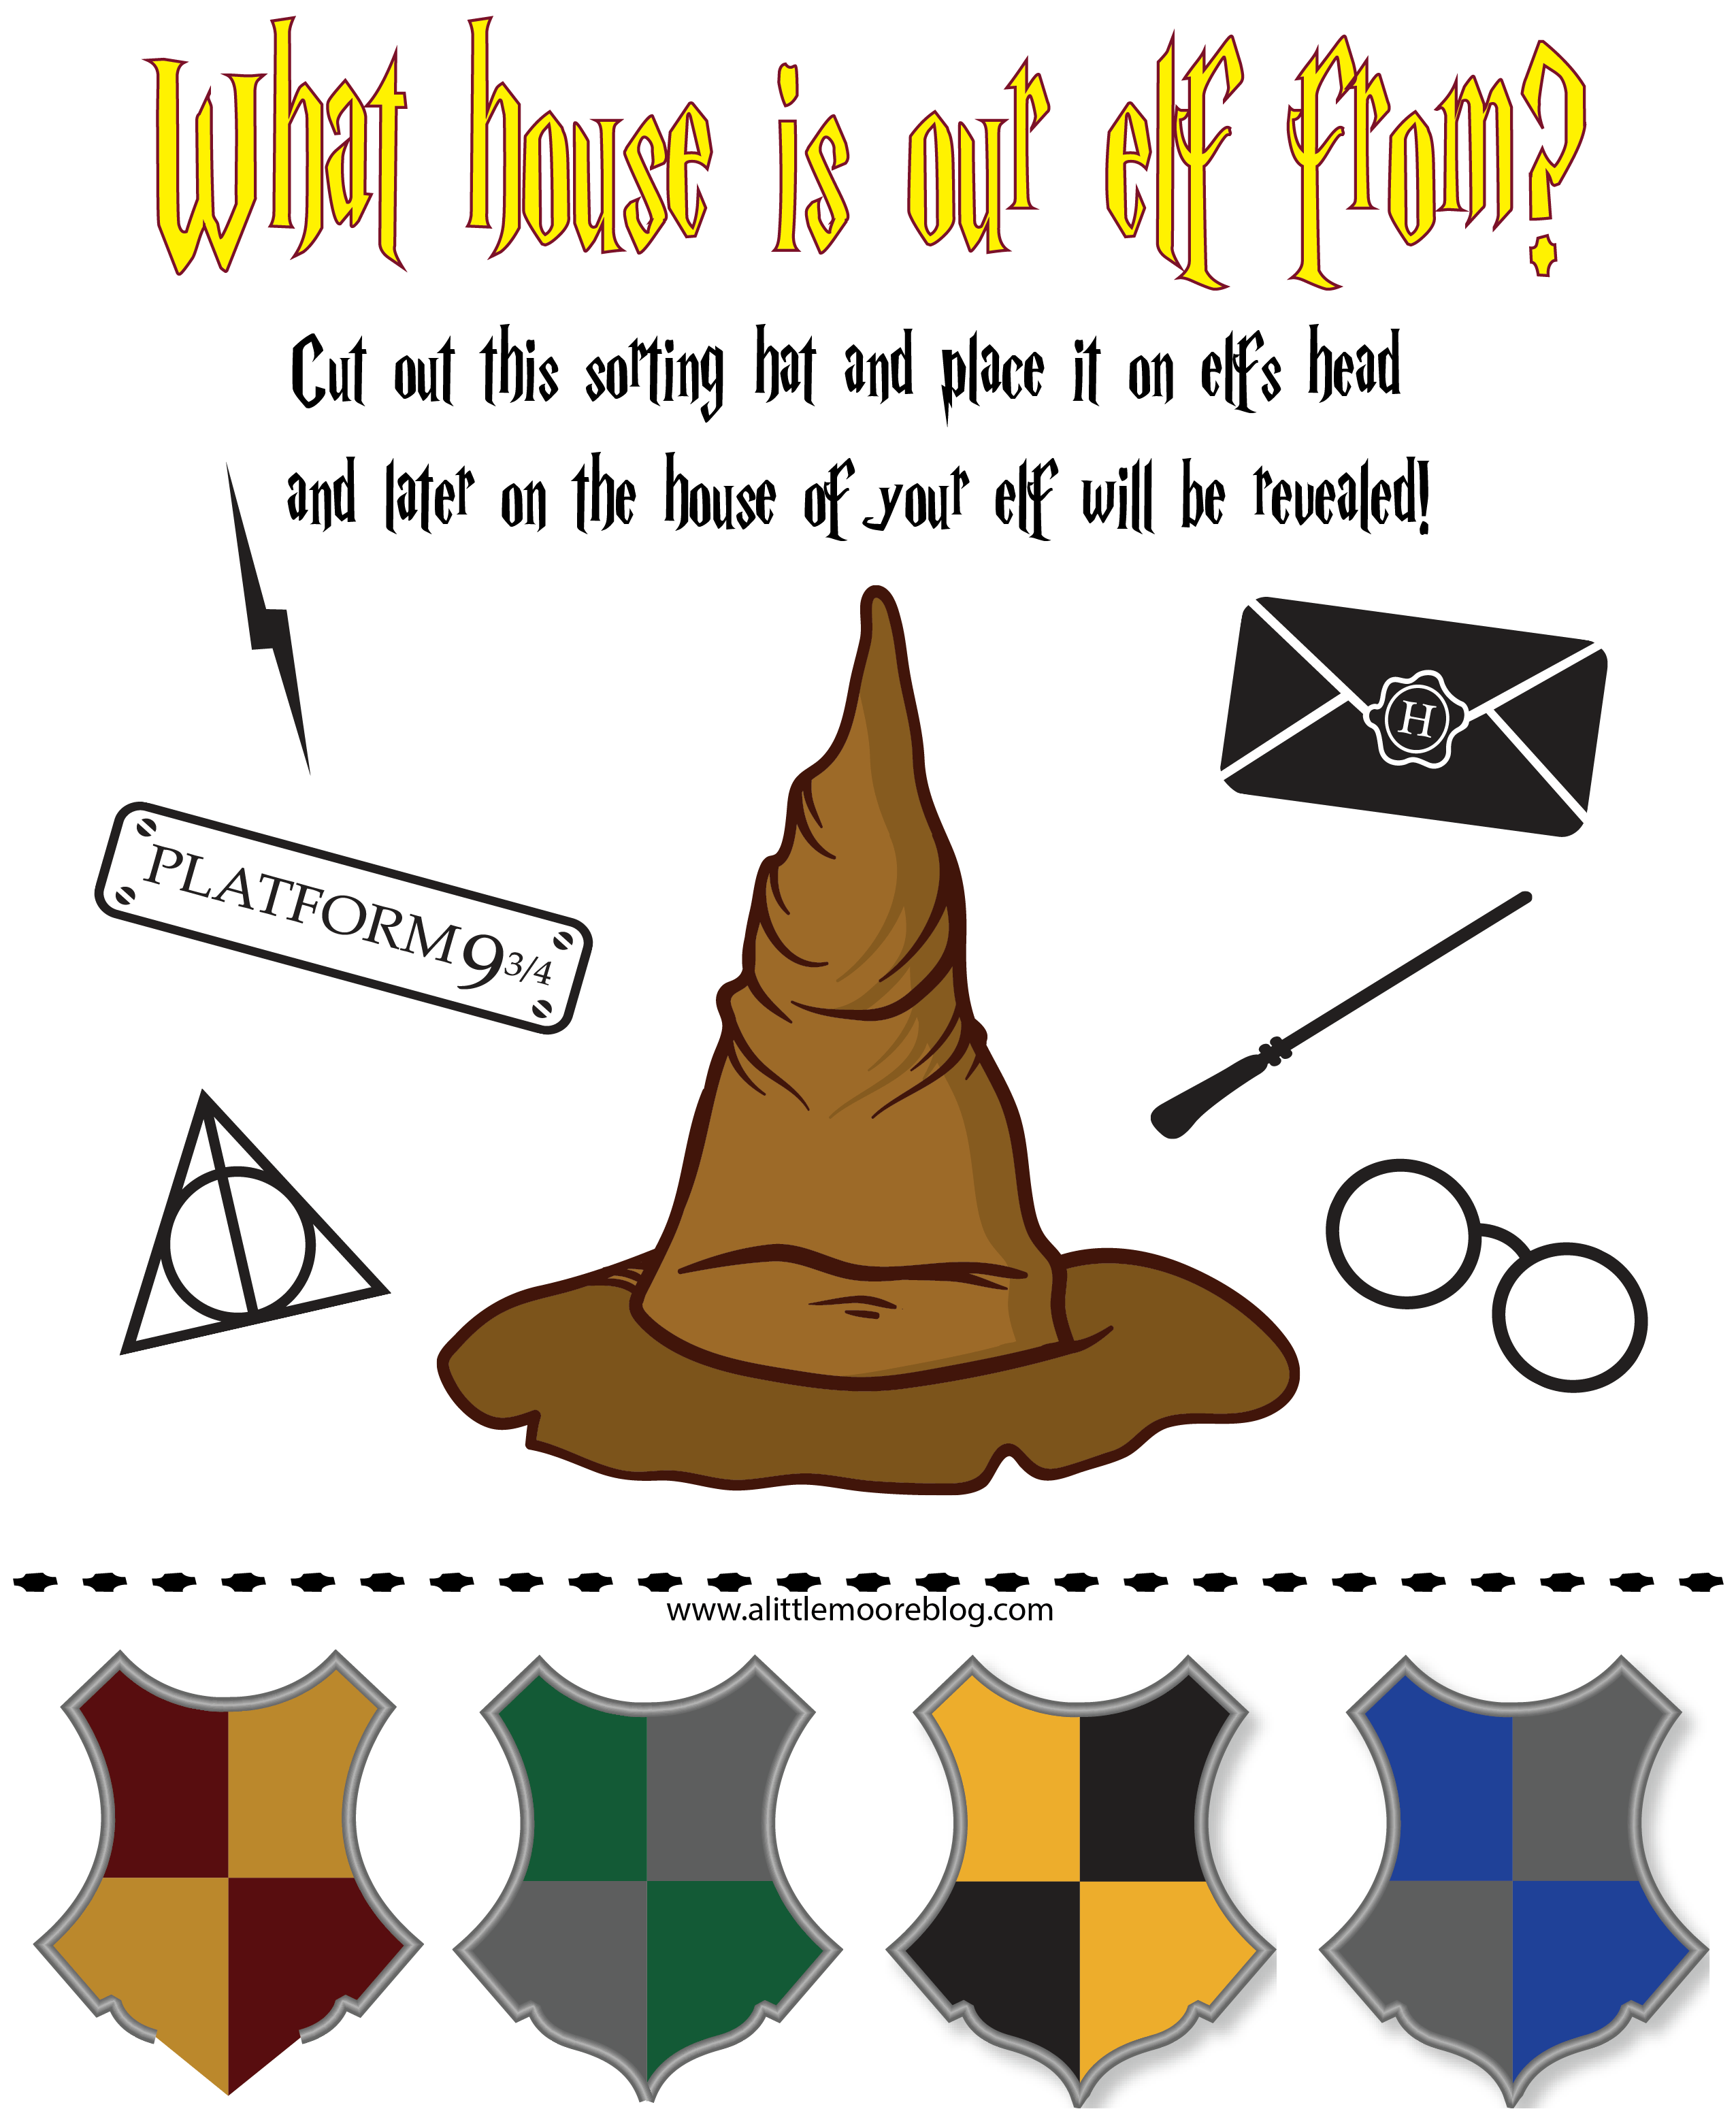 graphic regarding Elf Hat Printable named Elf upon the Shelf Harry Potter Sorting Hat Free of charge Printable